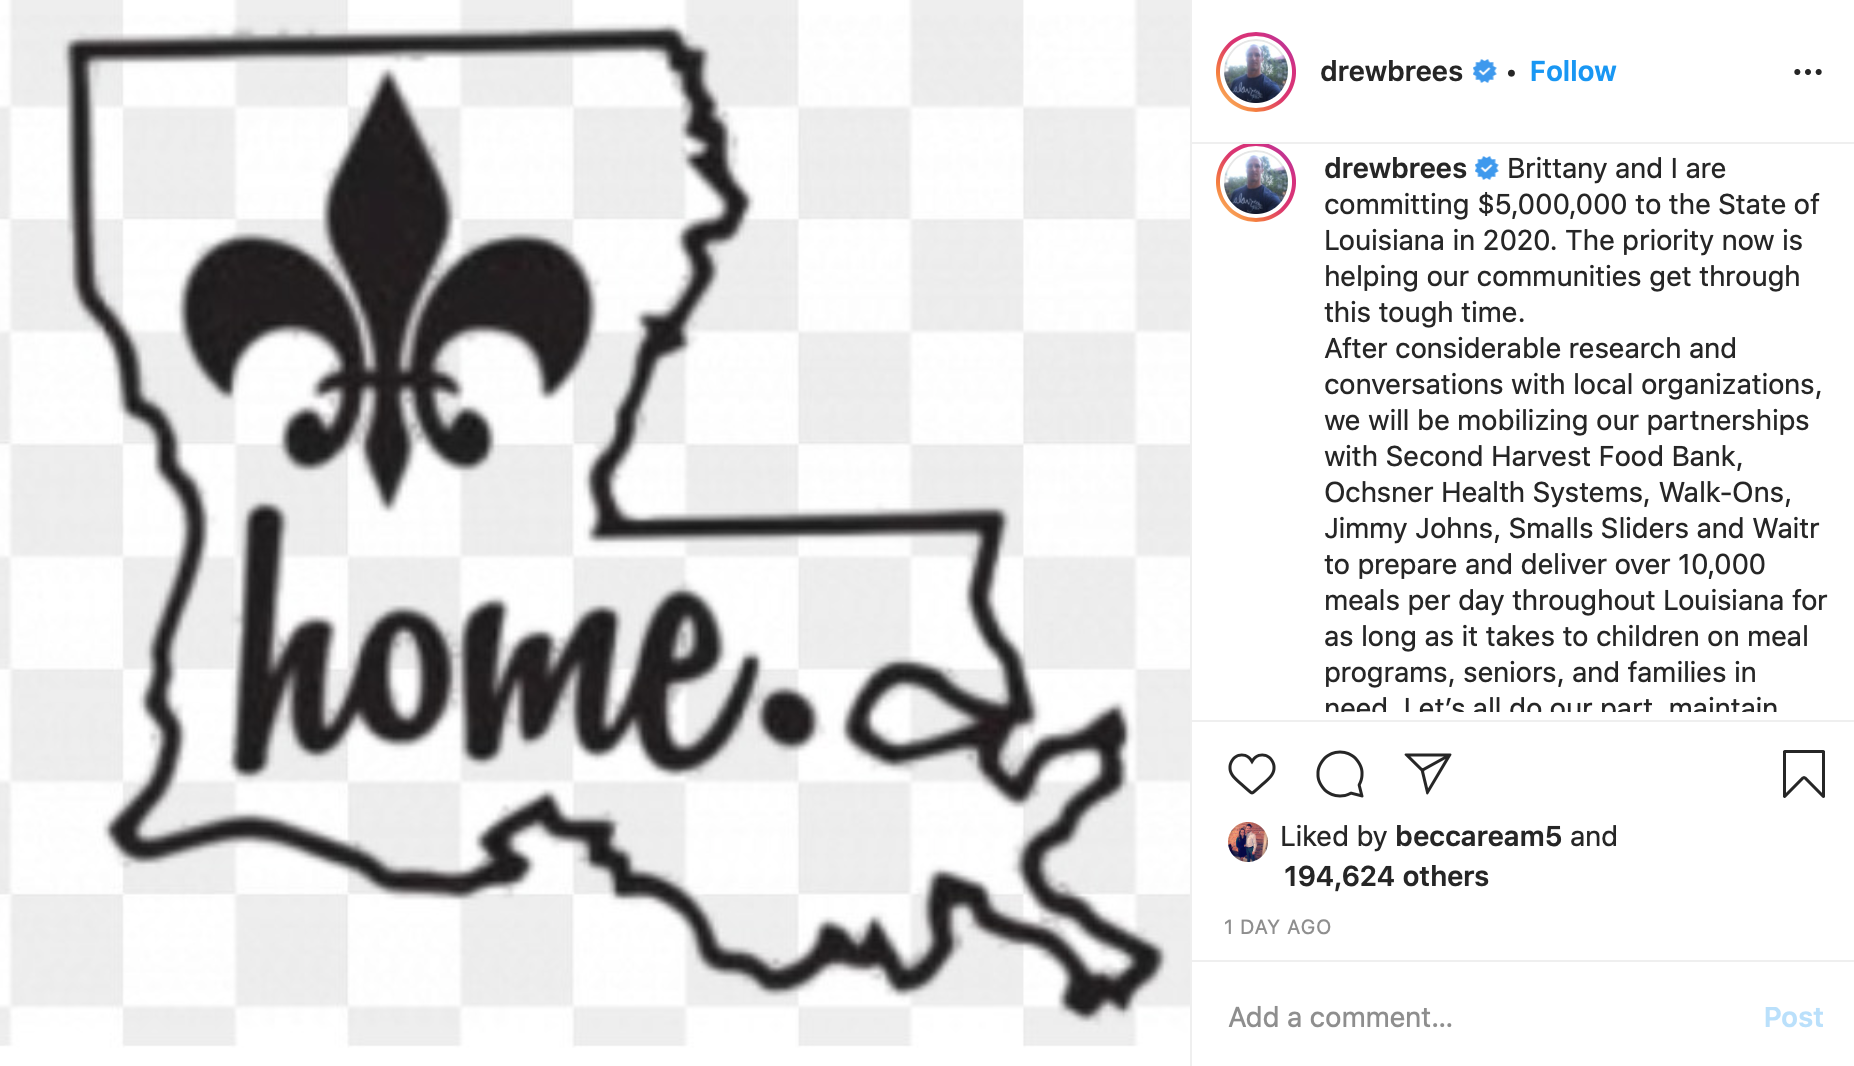 Drew Brees Donates $5 Million to Fight Coronavirus as Louisiana Becomes Inundated with Patients